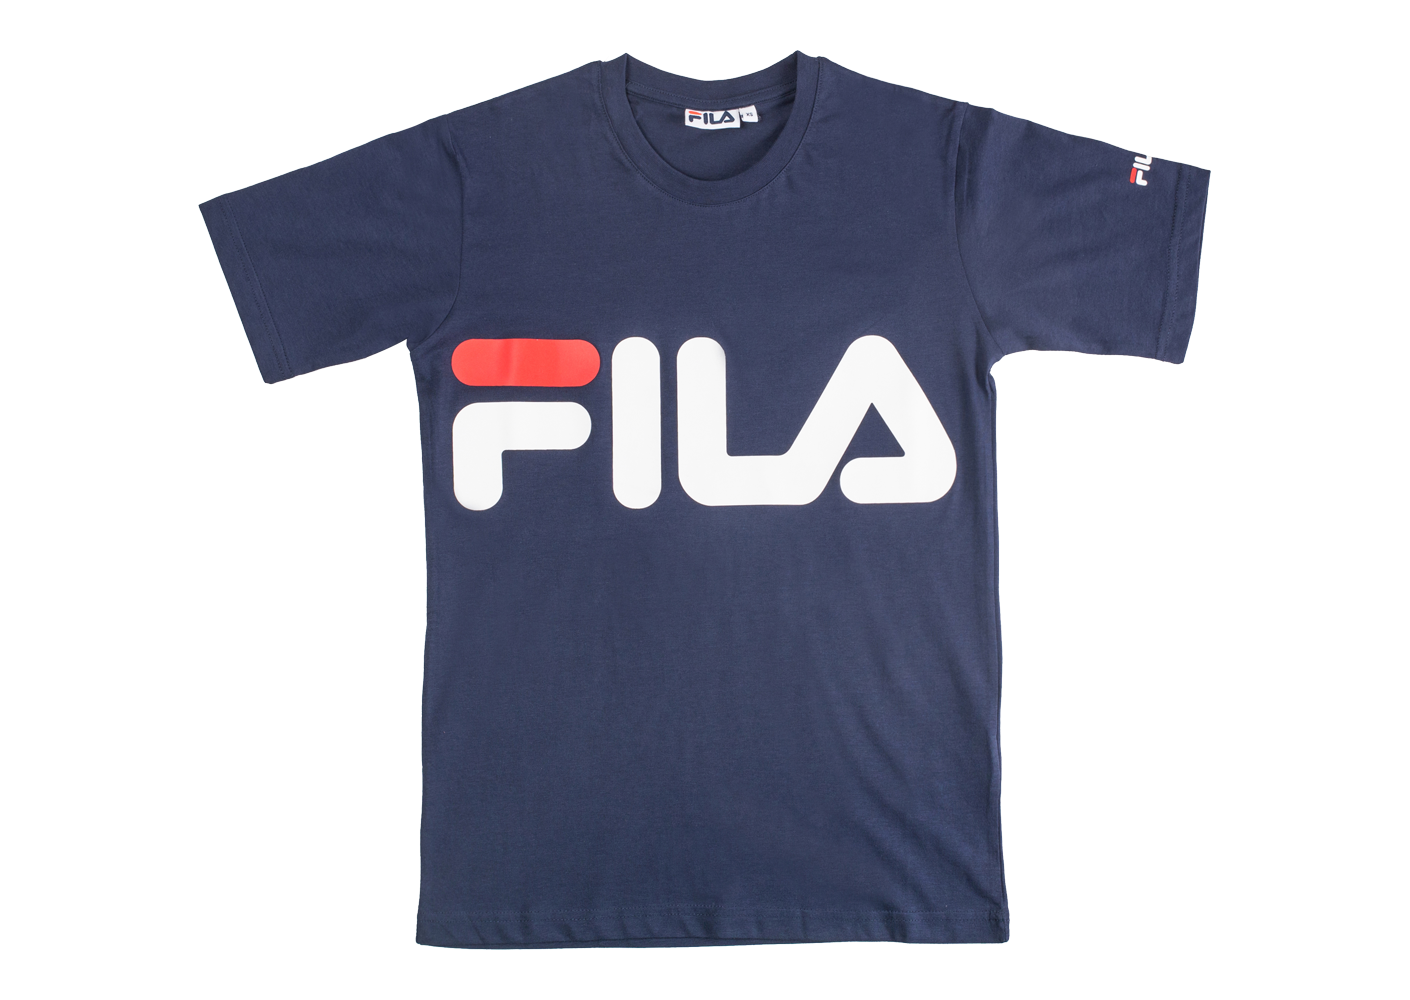 fila t shirt classic logo bleu marine mixte nouveaut s. Black Bedroom Furniture Sets. Home Design Ideas